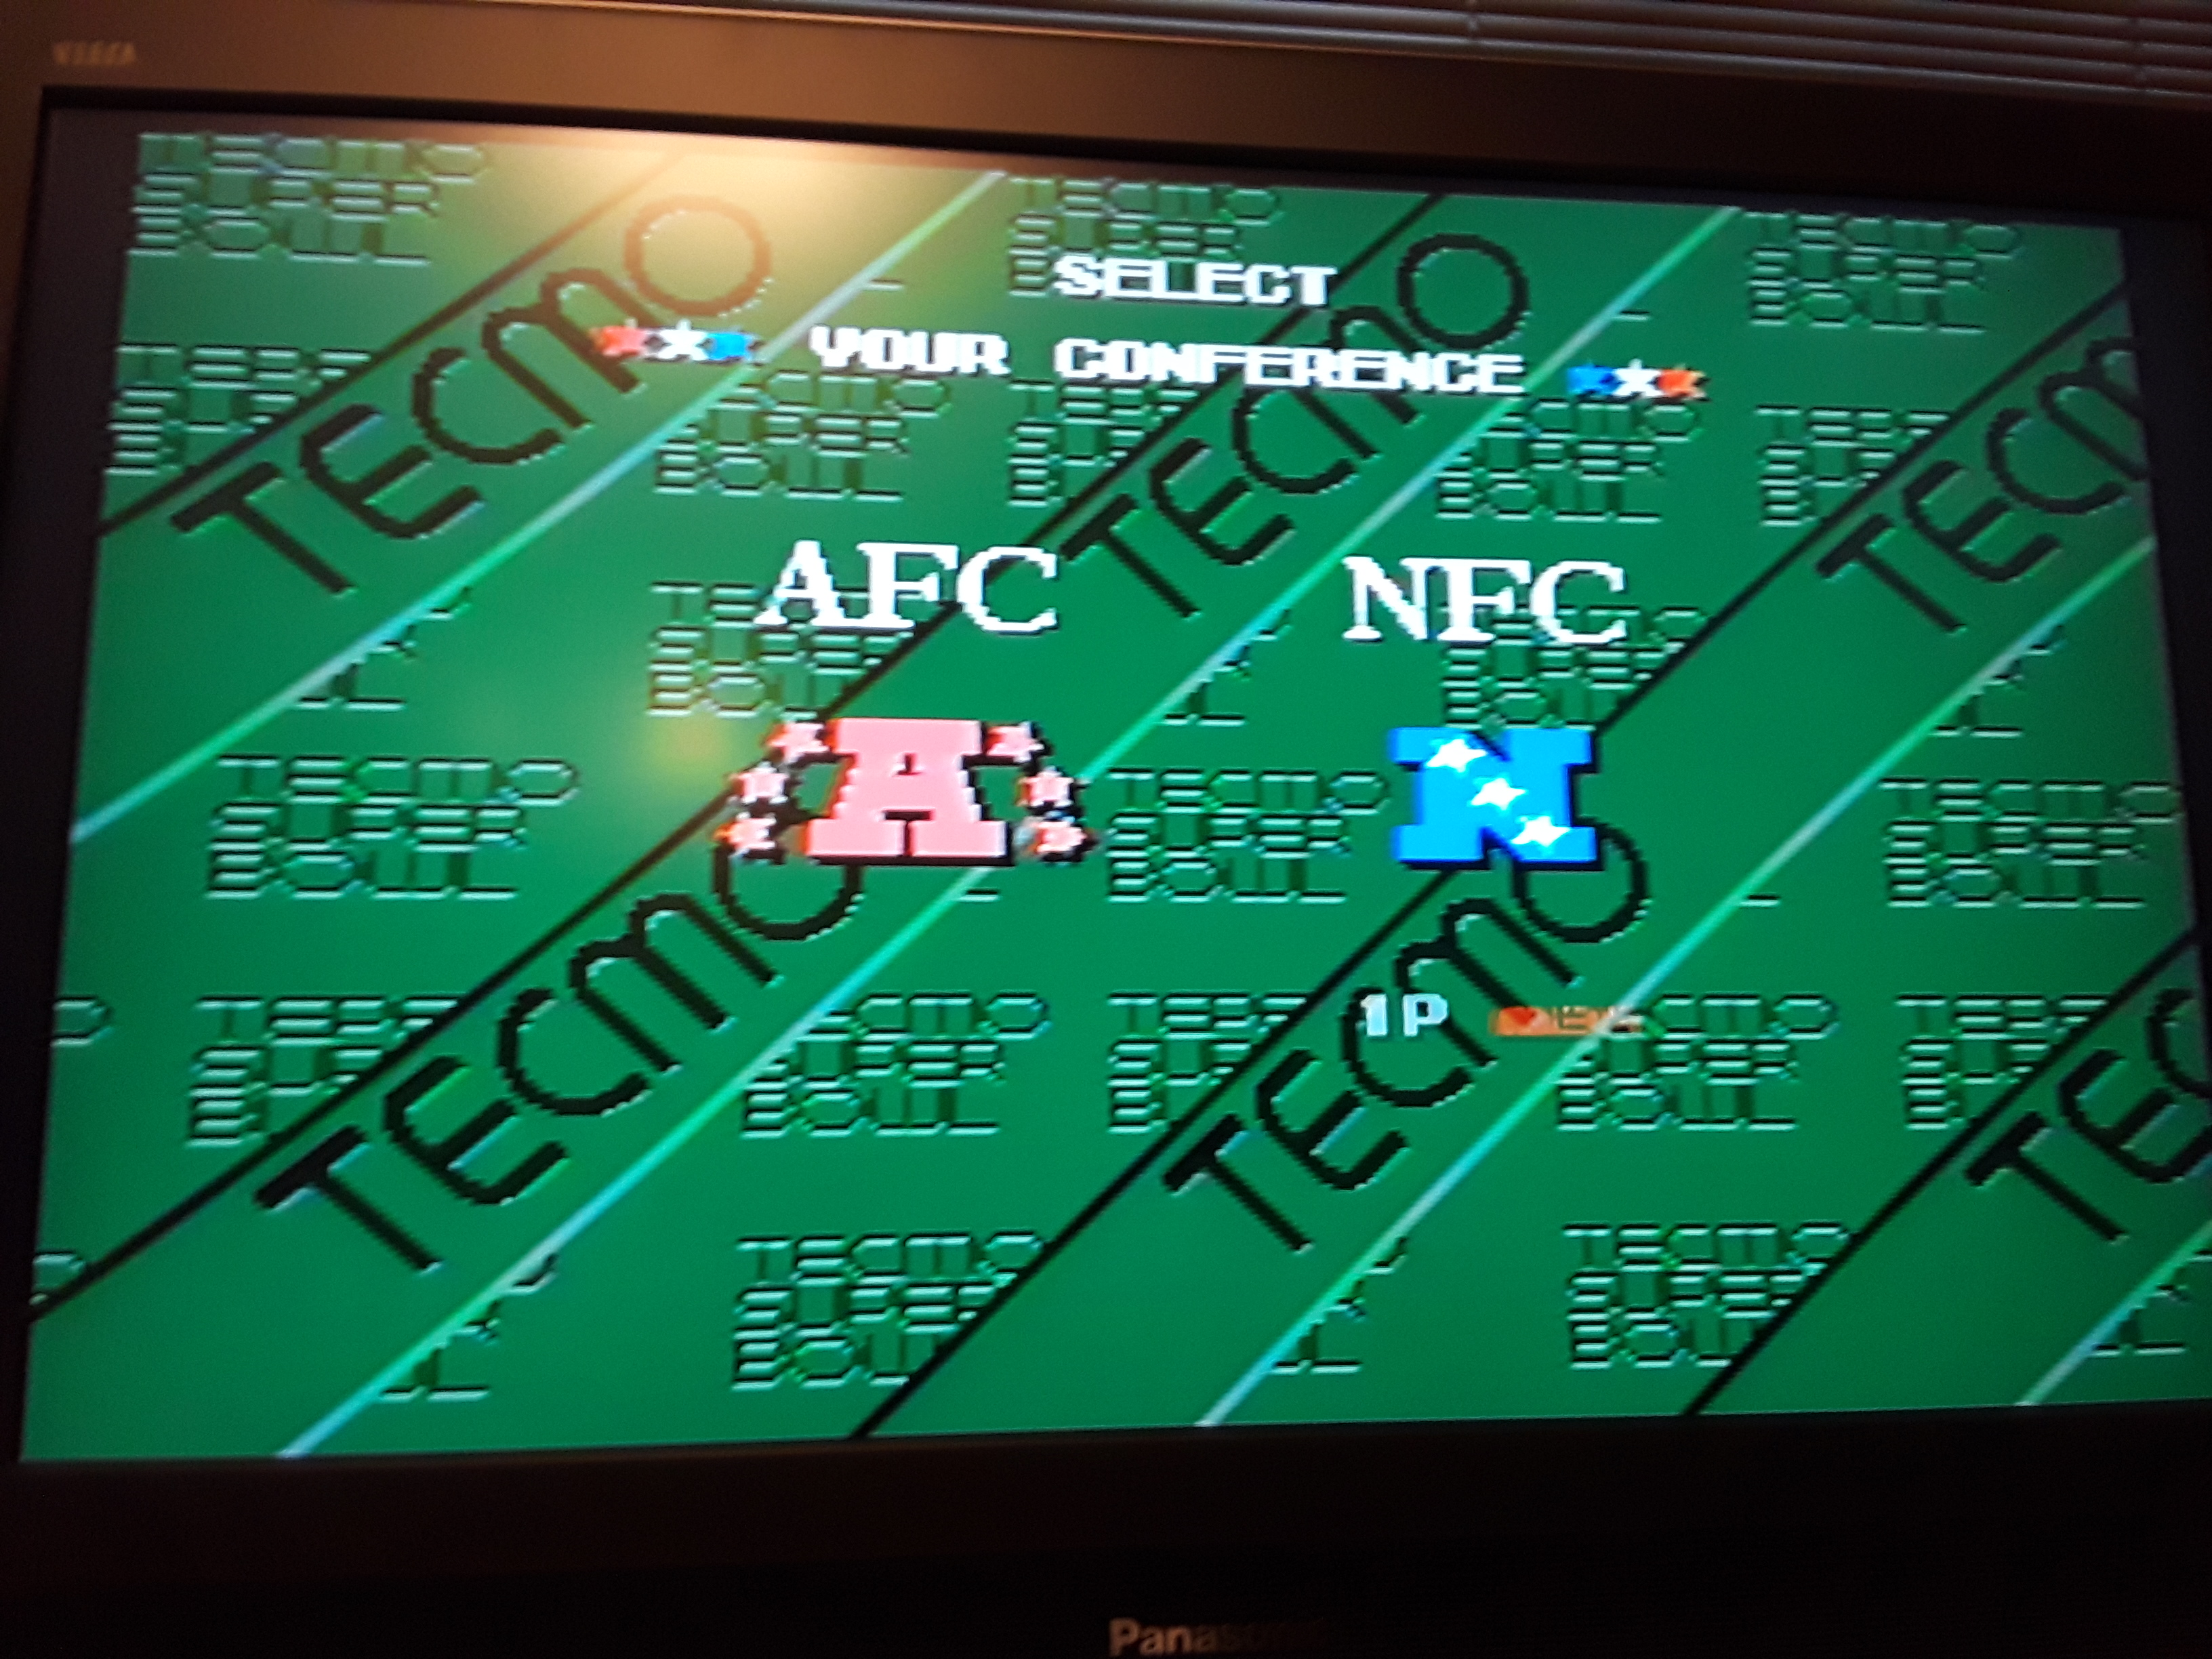 Tecmo Super Bowl [Least Yards Allowed] [Pro Bowl] 63 points